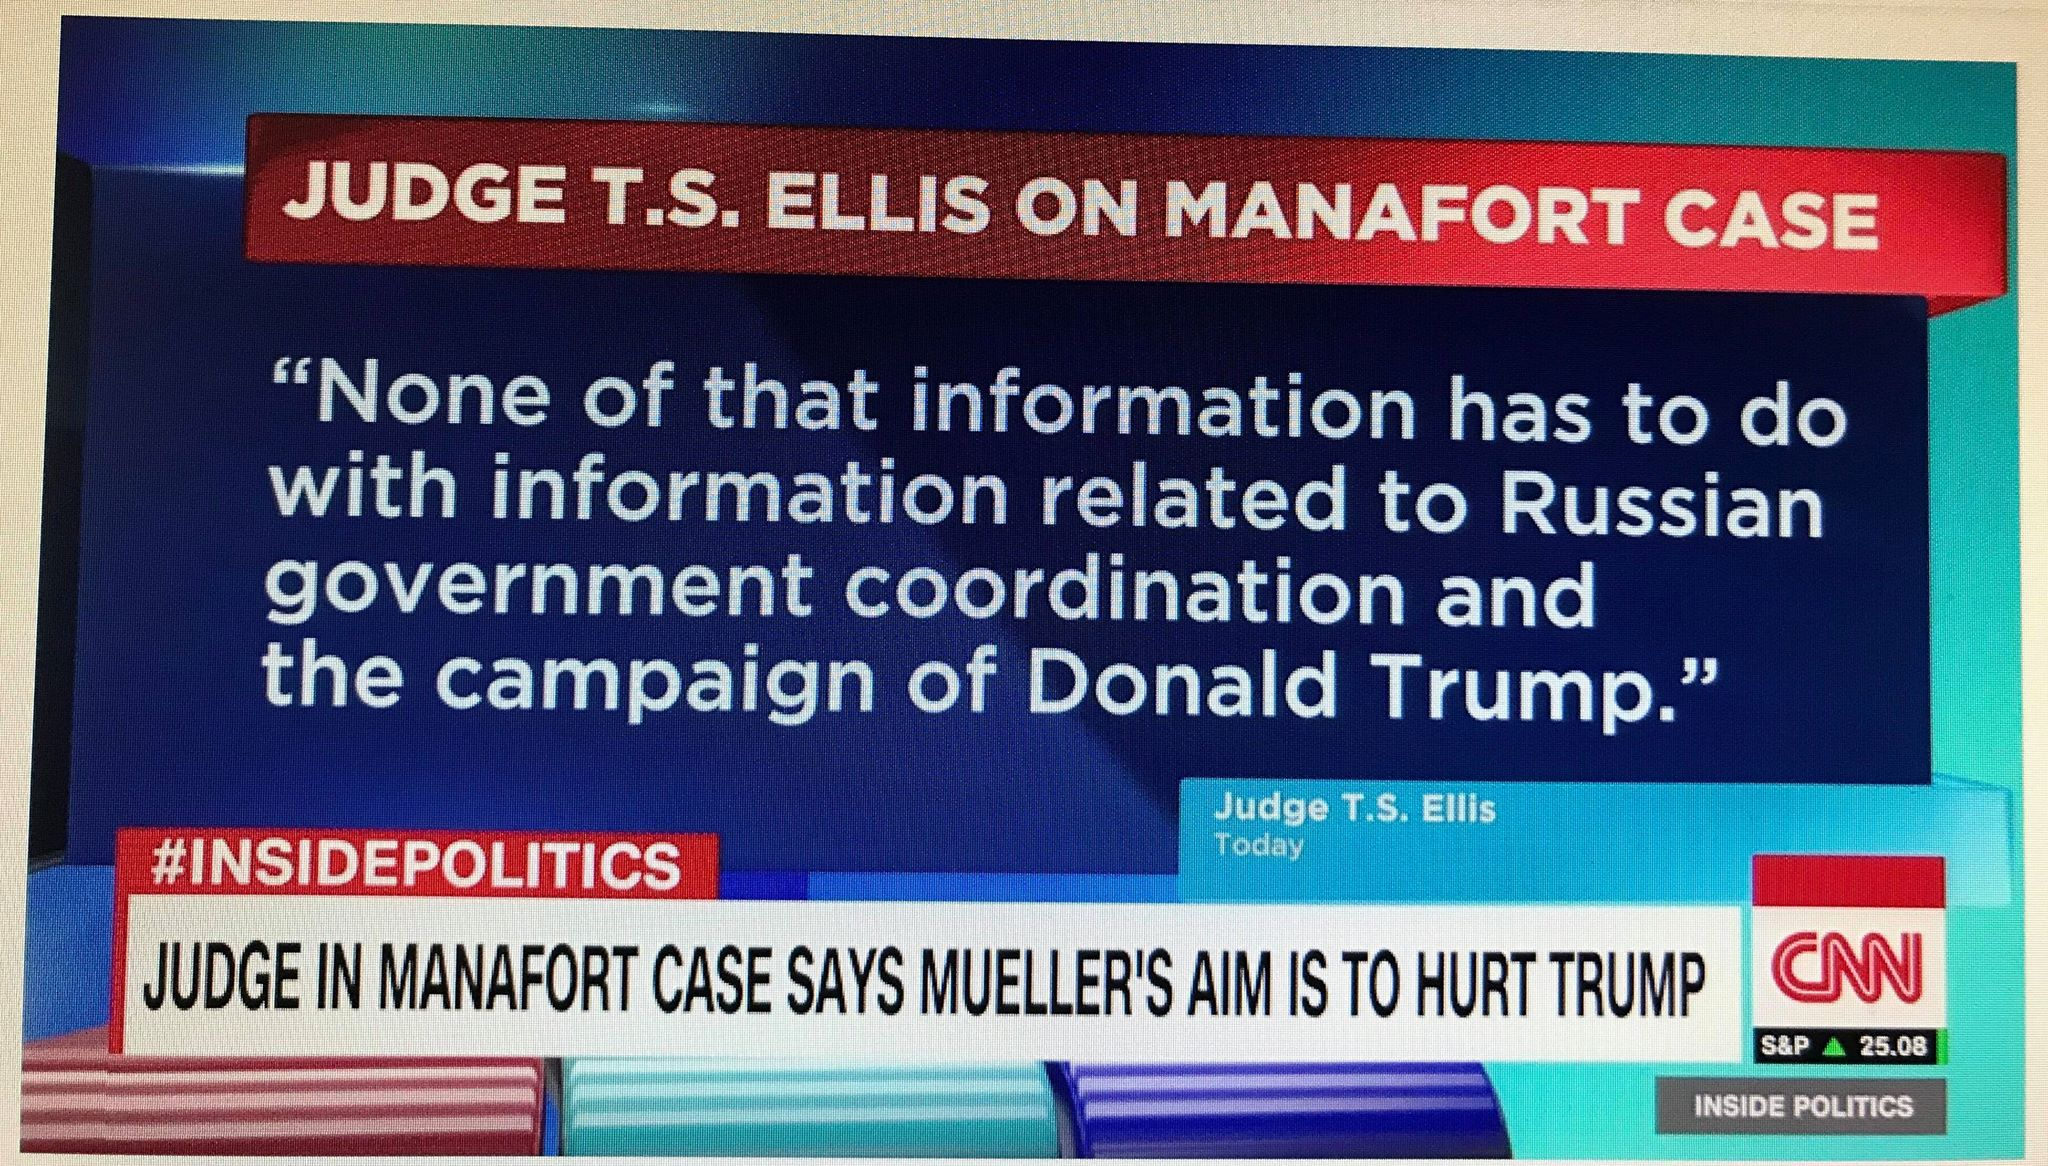 Image credit to US4Trump with CNNScreen capture.